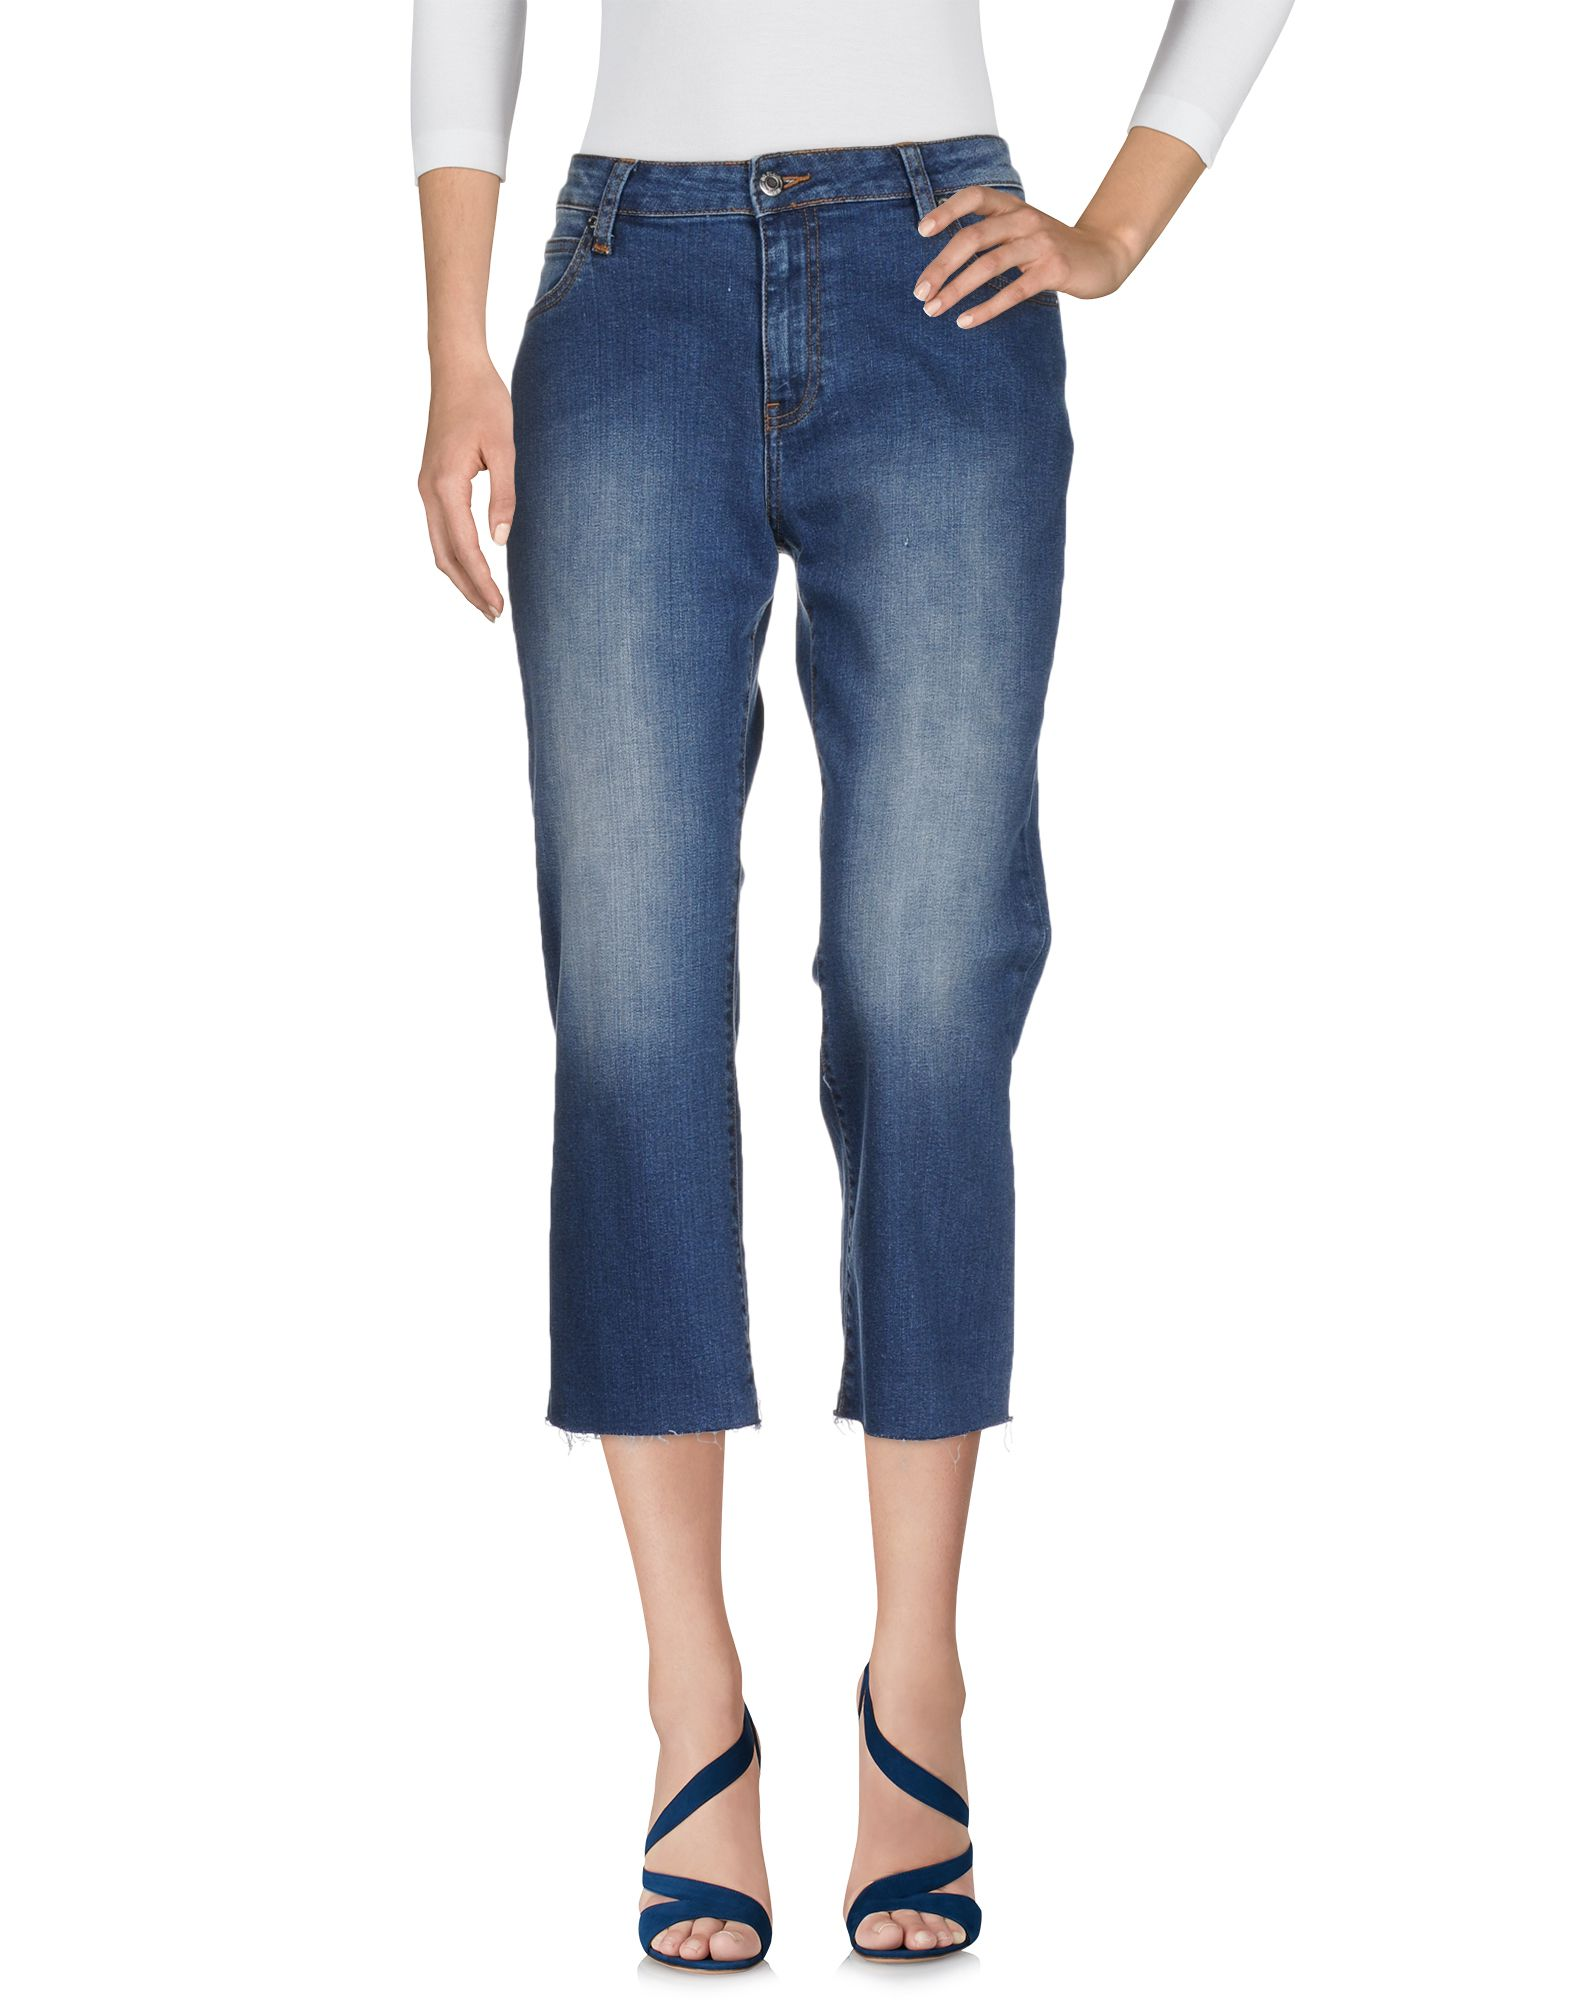 DR. DENIM JEANSMAKERS Джинсовые брюки-капри dr denim jeansmakers брюки капри